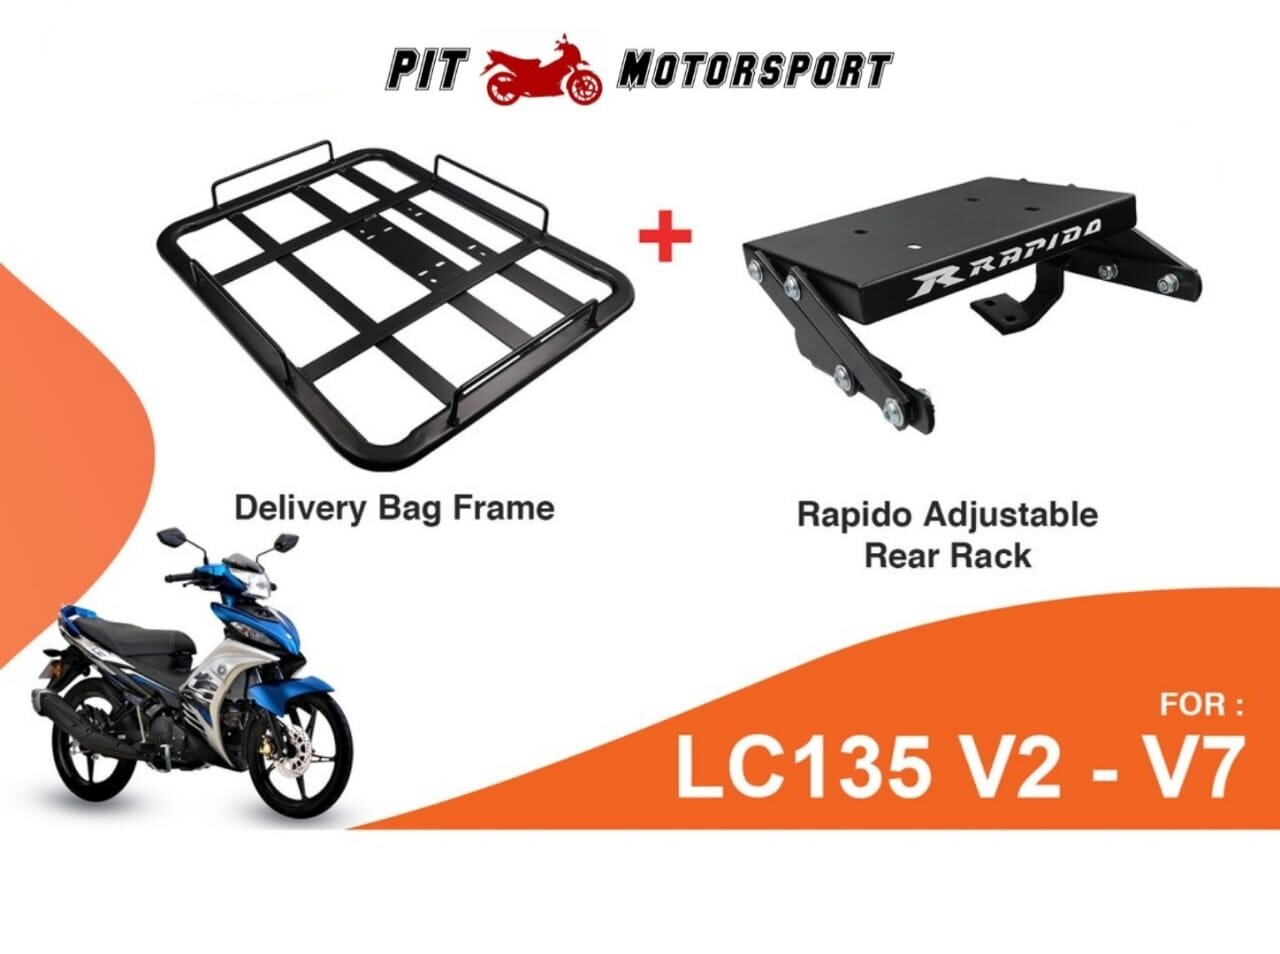 Monorack LC135 V2-V7 RAPIDO Foodpanda Grabfood Heavy Duty With Delivery Bag Frame Tapak Monorack LC4S LC5S LC135 V2 V3 V4 V5 V6 V7 ACCESSORIES MOTOR Food Panda Grab